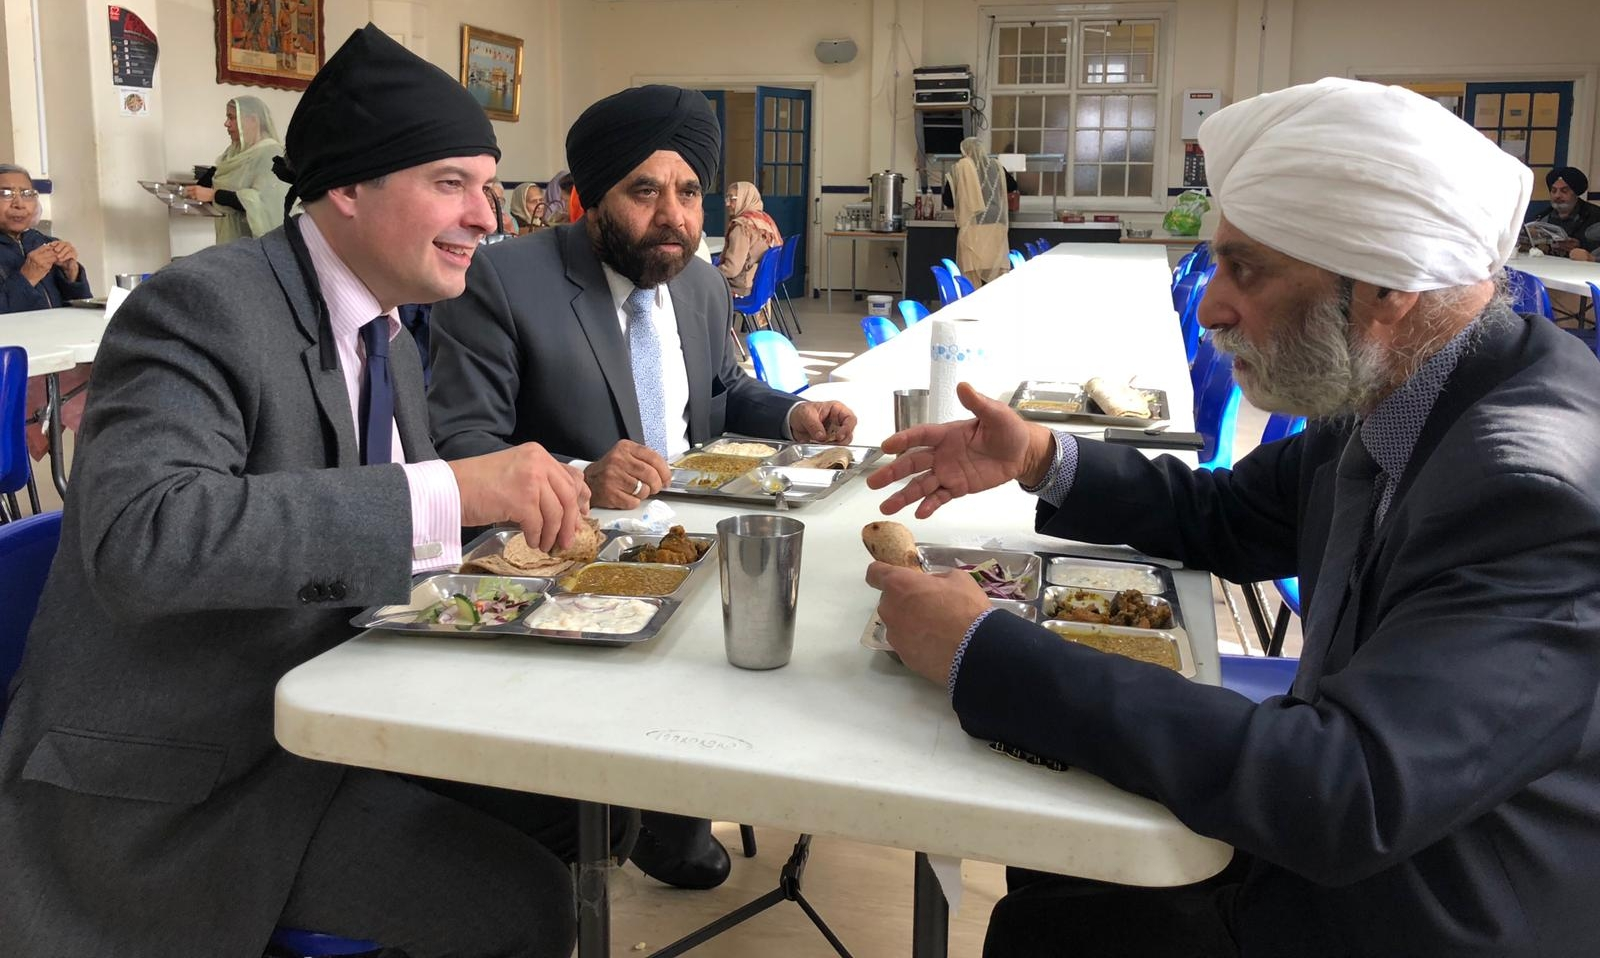 Jon Ashworth enjoying Langar with Councillor Gugnani at Guru Amardas Gurdwara after launching a food drive in celebration of the birthday of the Sikh's first Guru - Friday October 19 2018